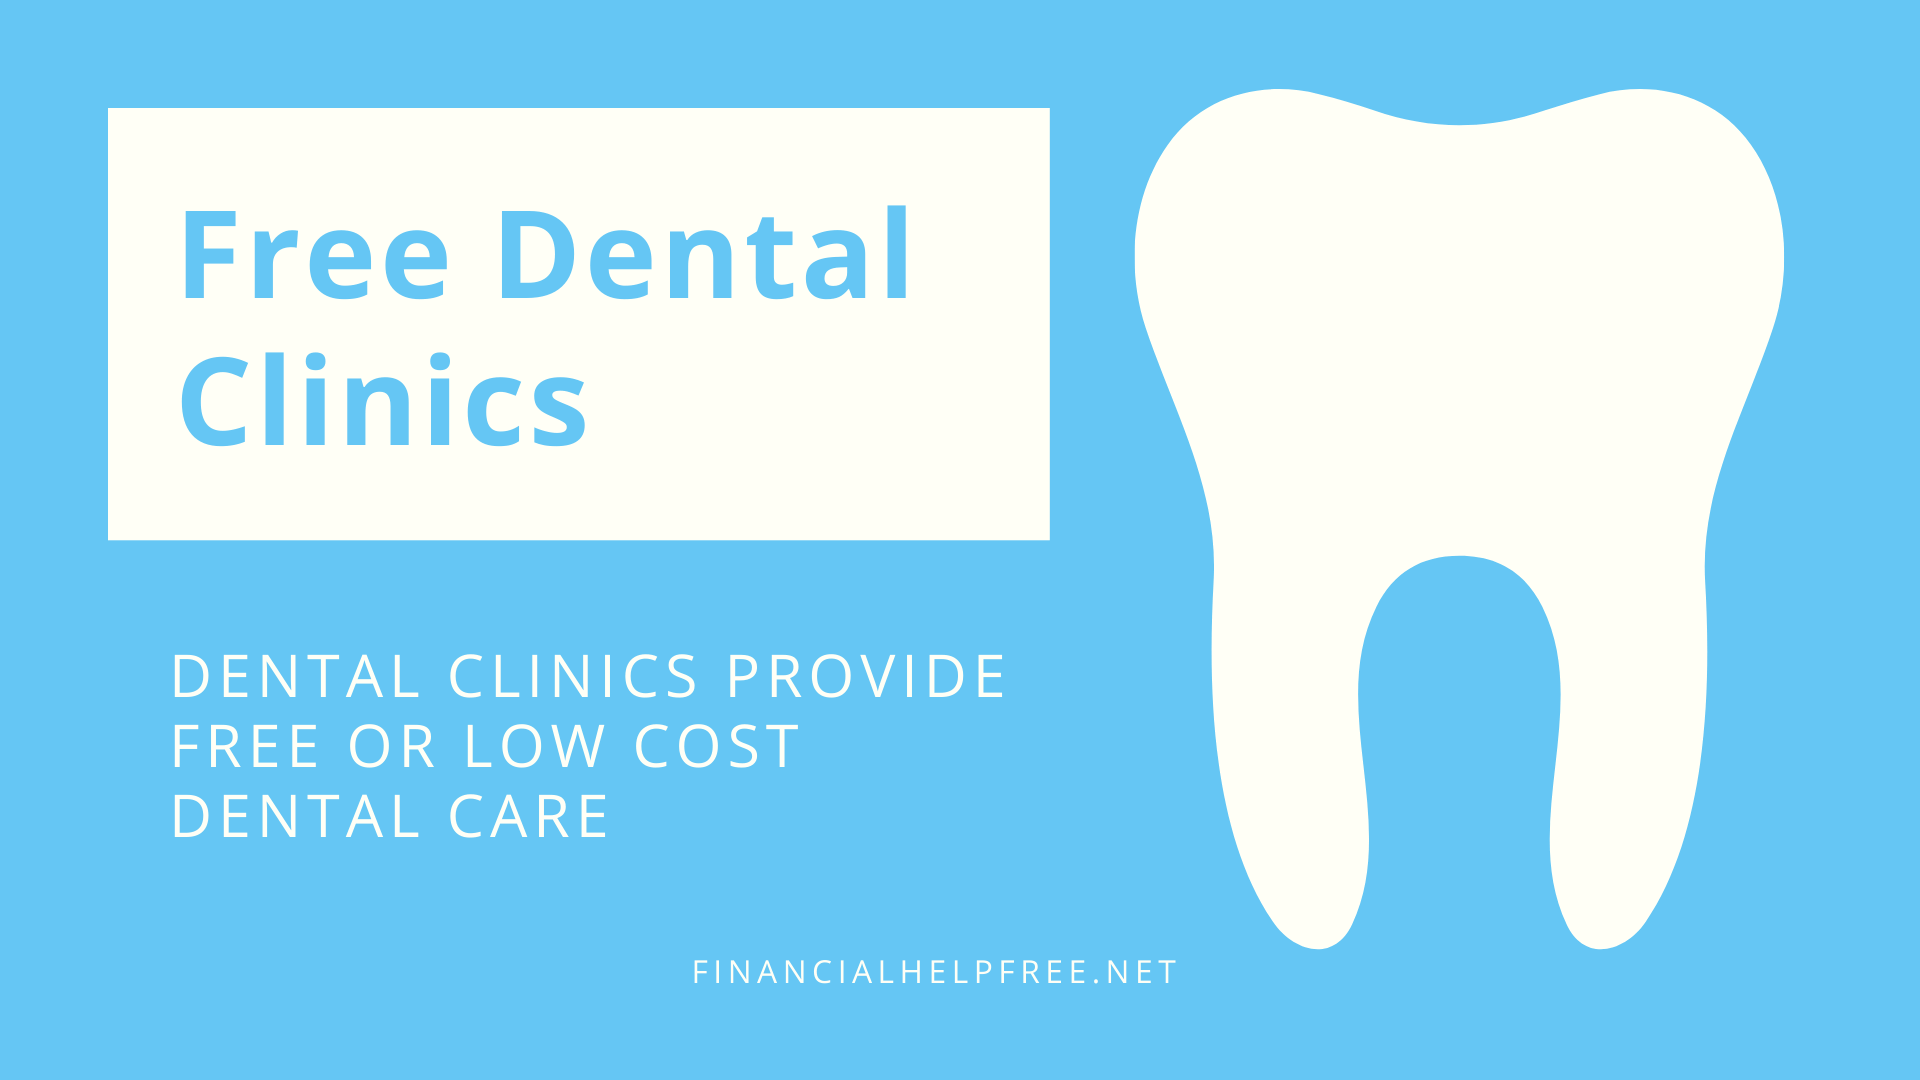 free dental clinics